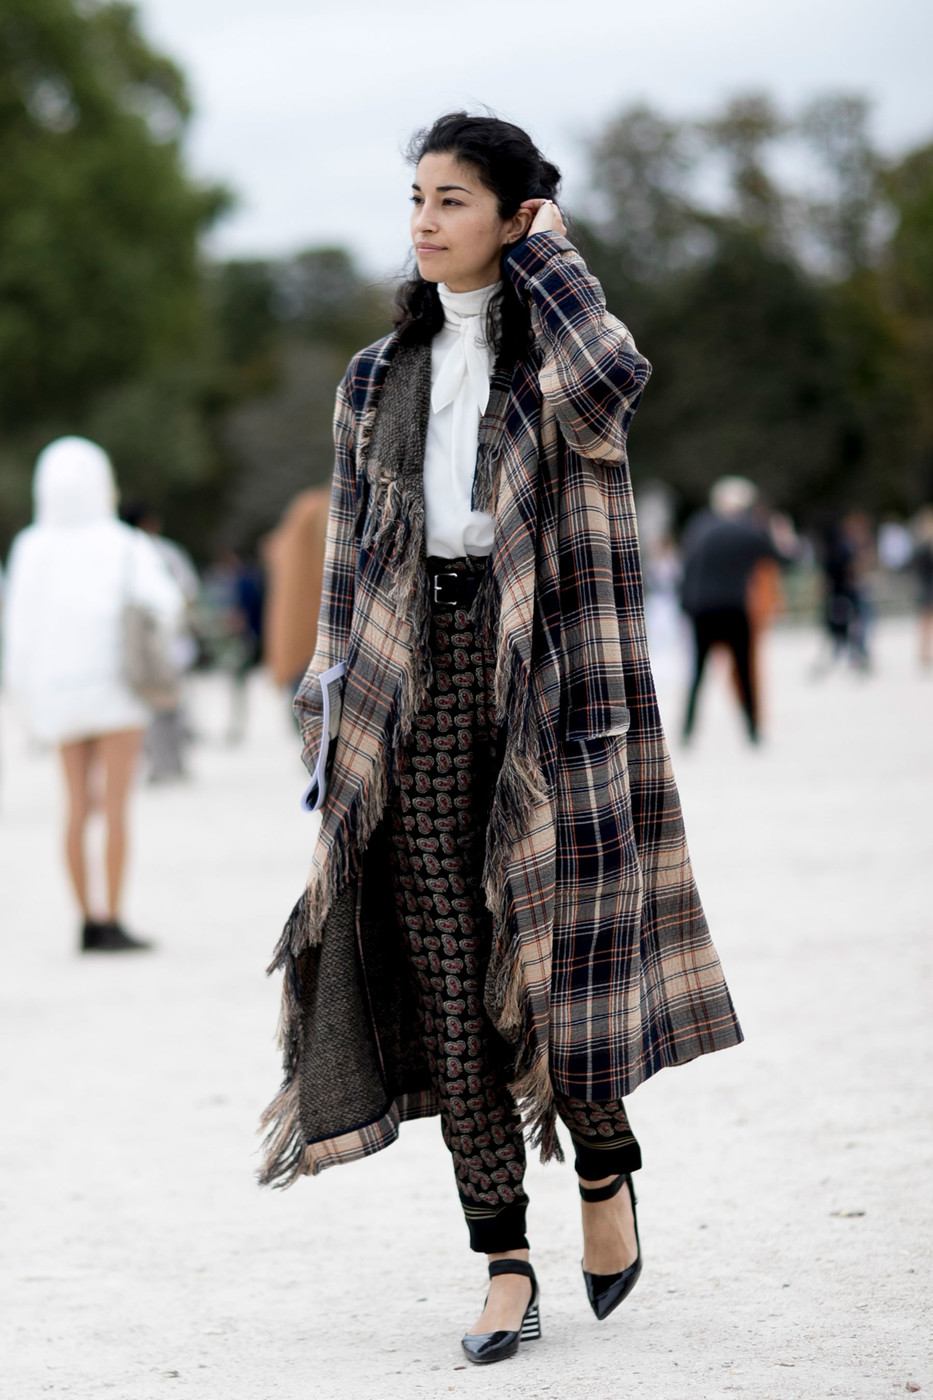 Fringed Plaid Coat Ridiculously Chic Street Style At Paris Fashion Week Livingly